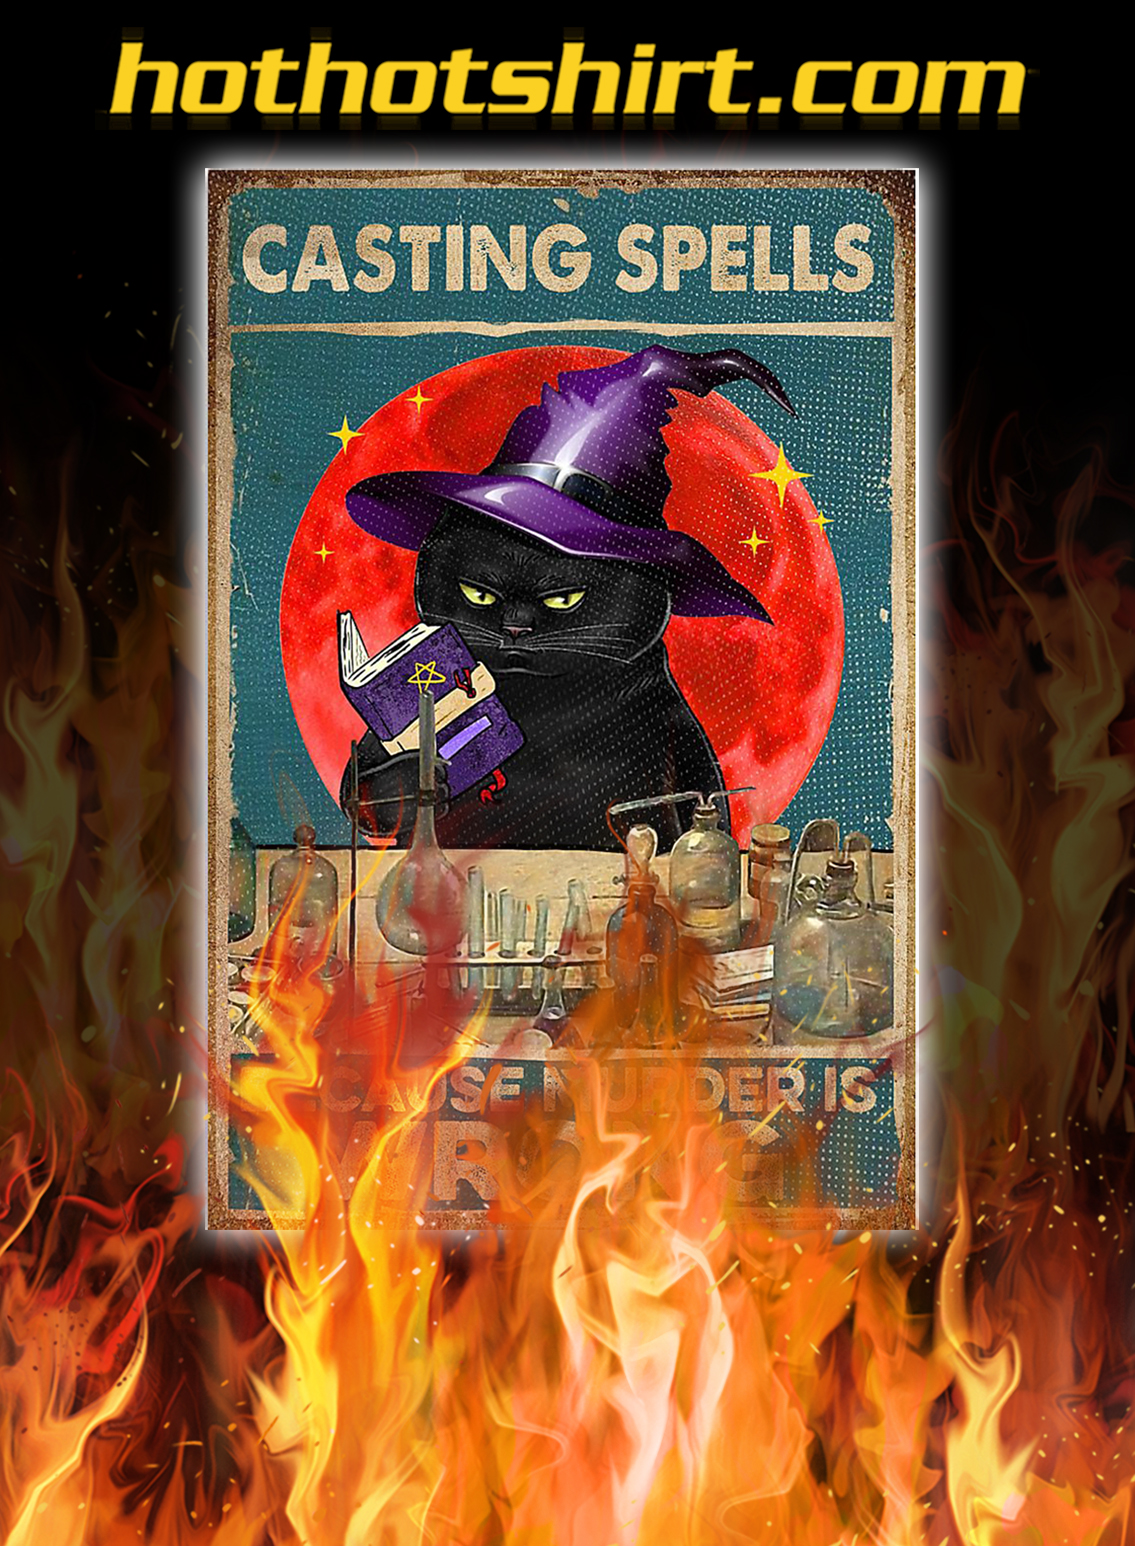 Witch cat casting spells because murder is wrong poster - A3